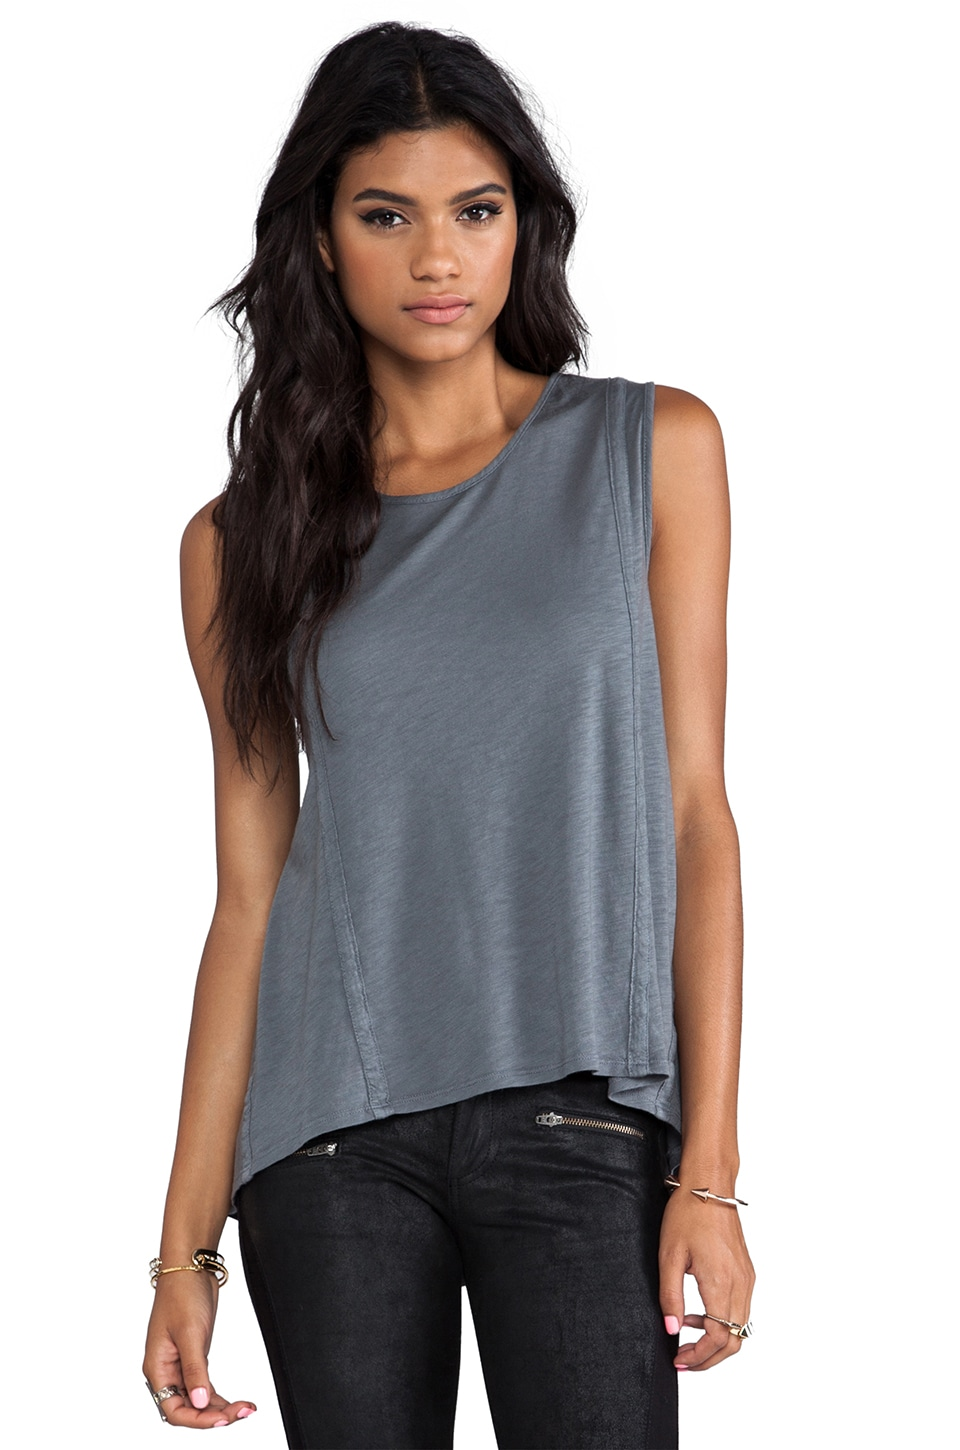 Saint Grace Vintage Jersey Balboa Loose Muscle Tank in Iron